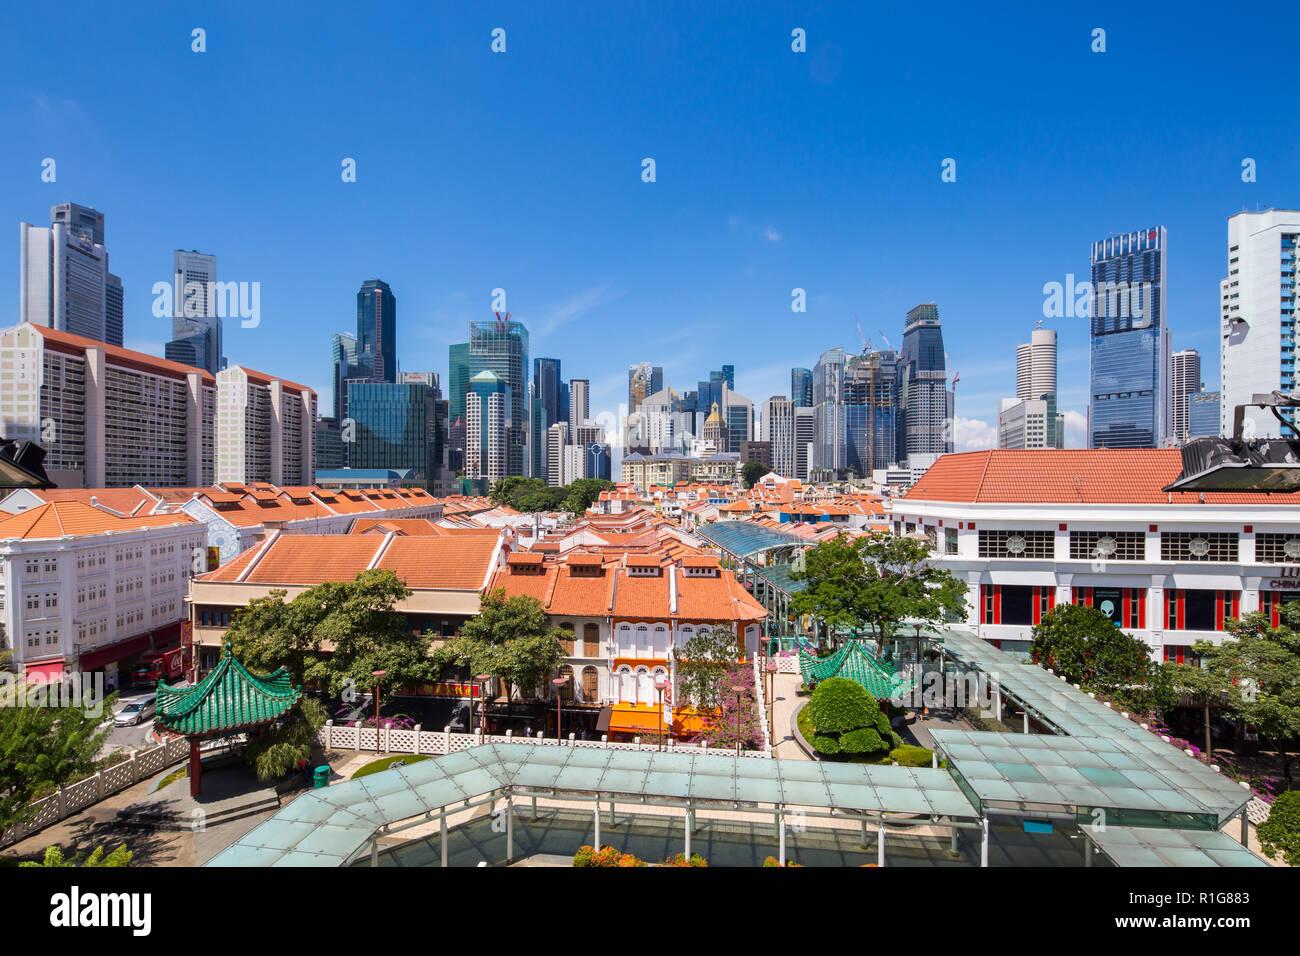 View of classicists Chinatown and the modernists Central Business District in the background at Singapore, Southeast Asia. Stock Photo